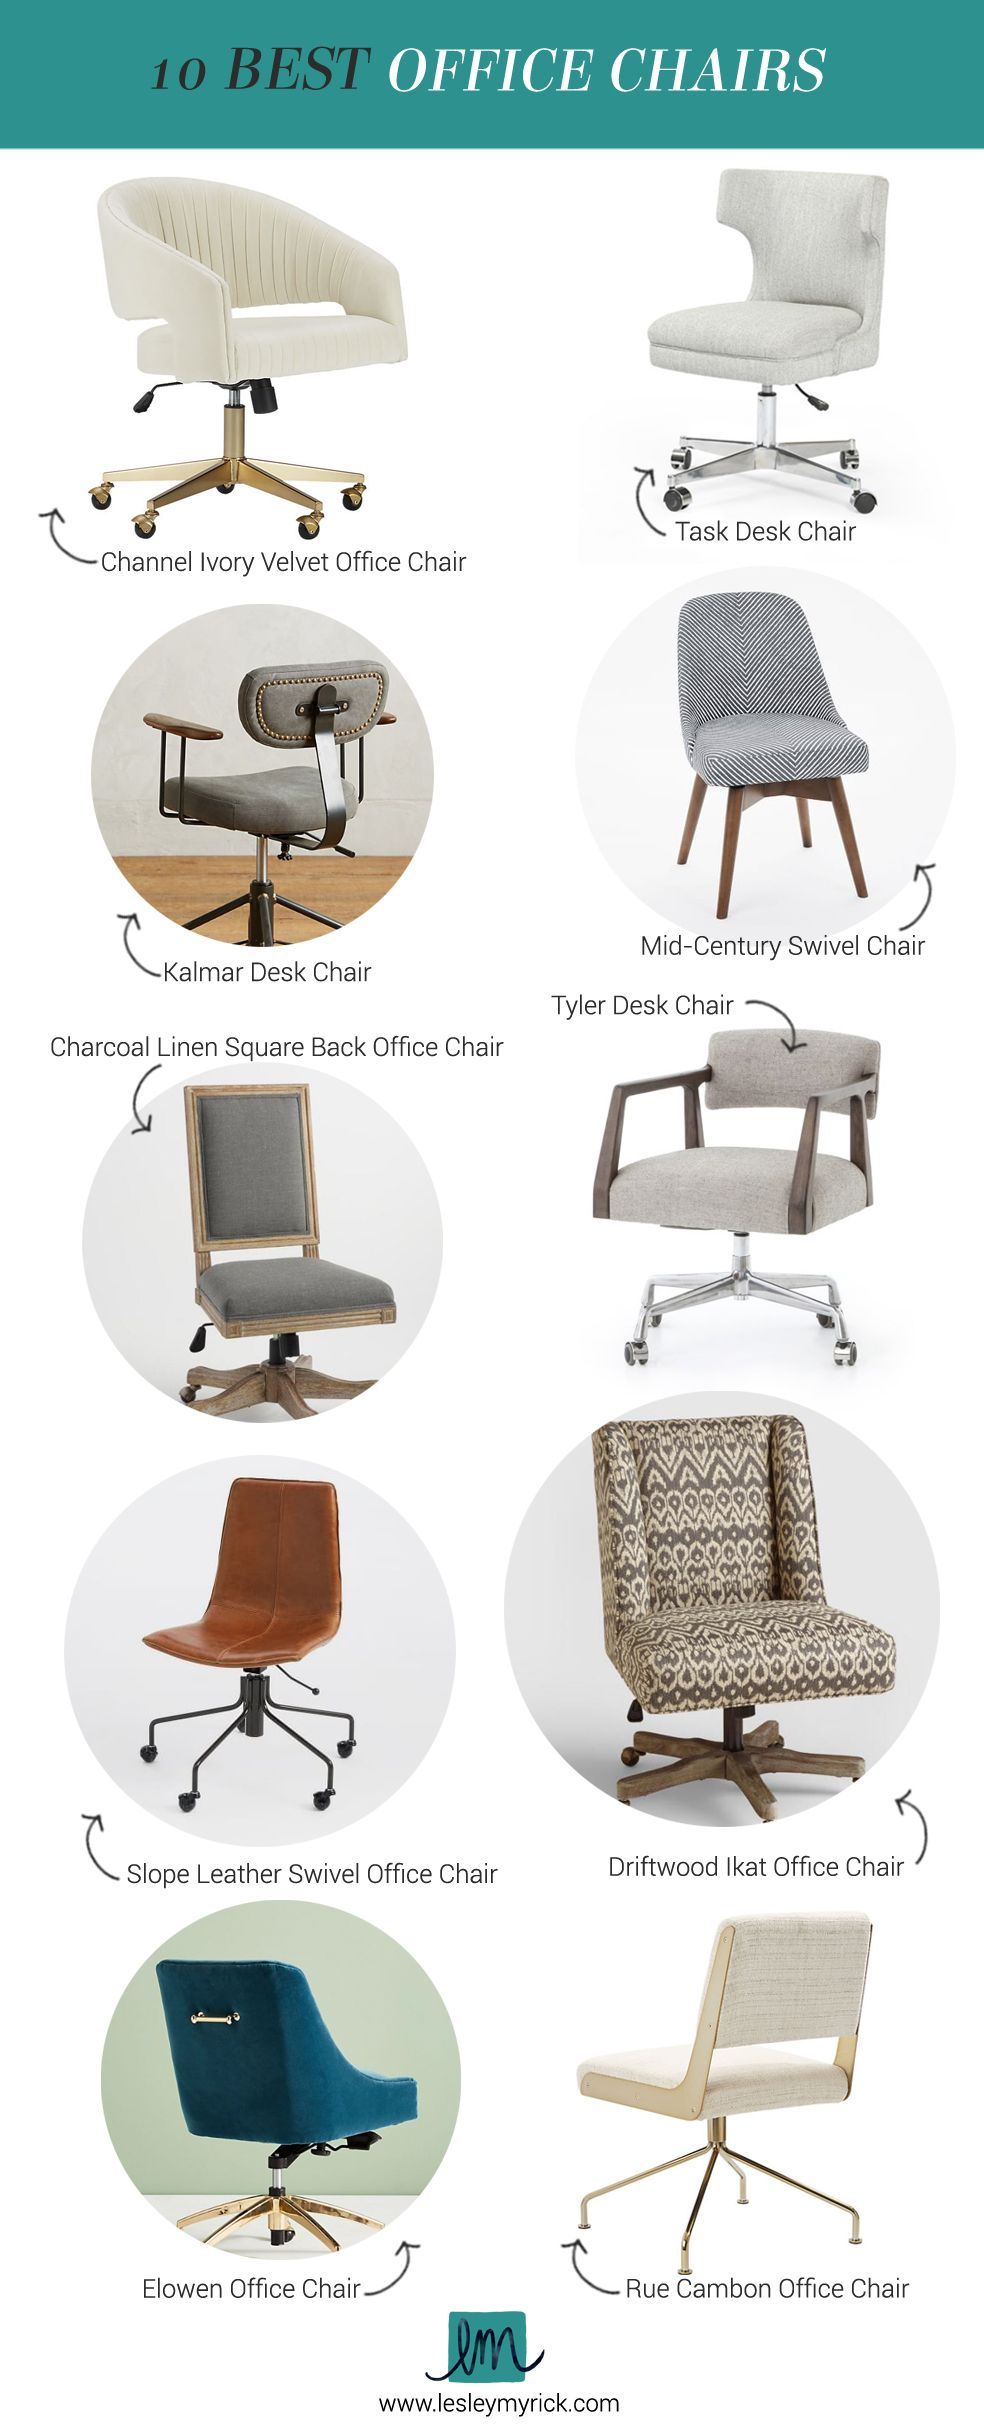 Lesley S Picks 10 Best Office Chairs Best Office Chair Mid